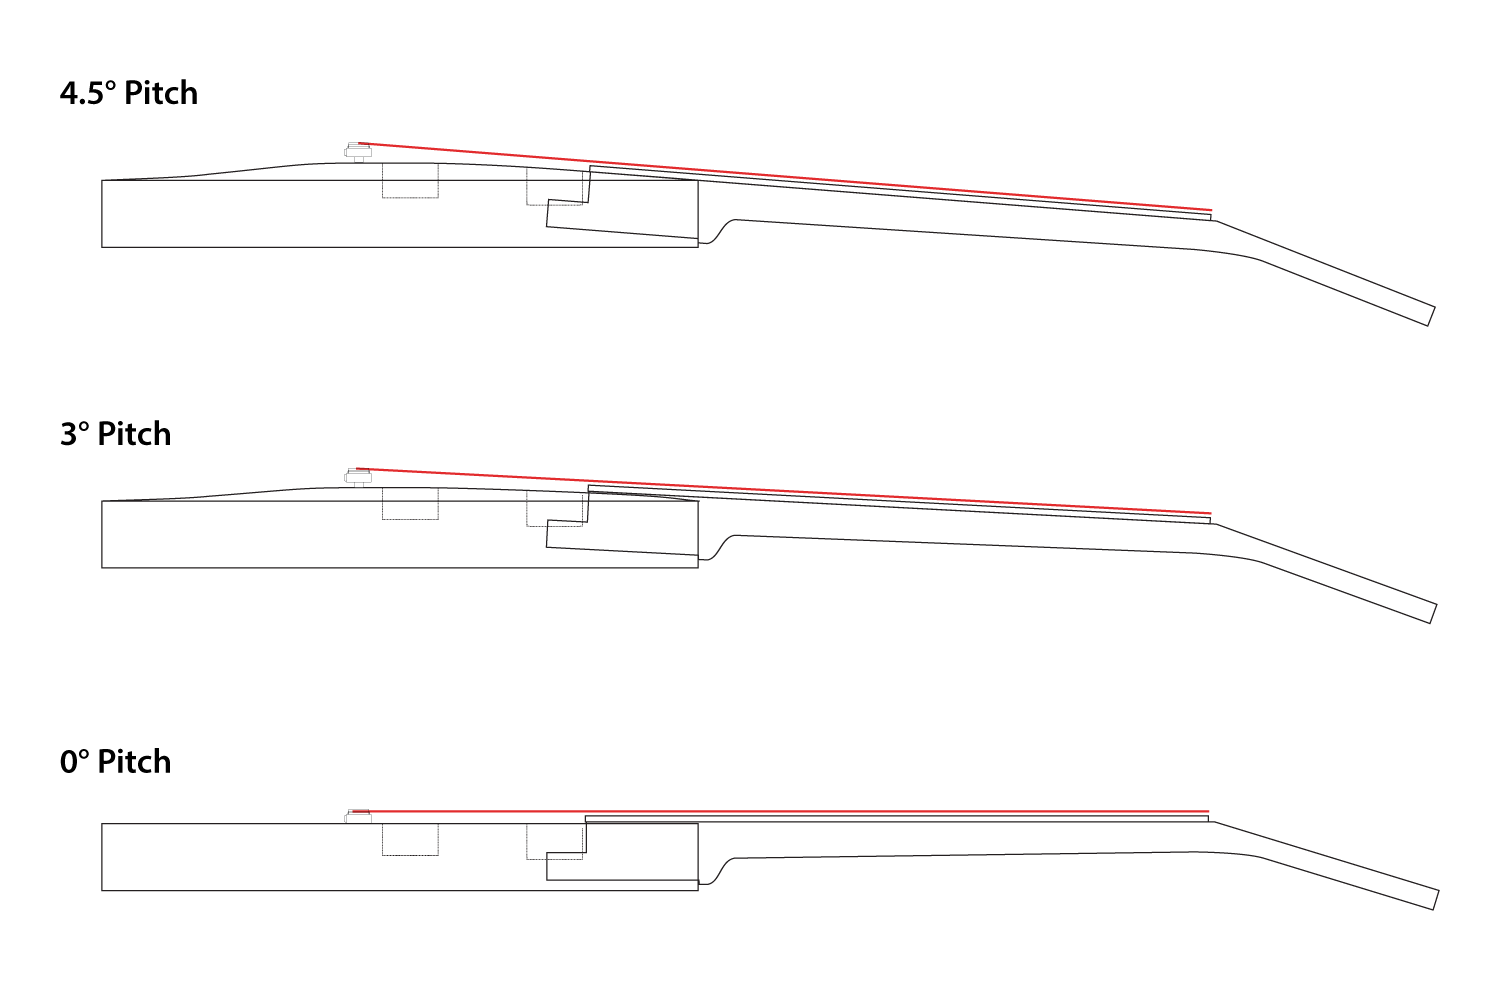 A diagram showing three different guitar neck pitches for comparison - 4.5°, 3°, and 0°.